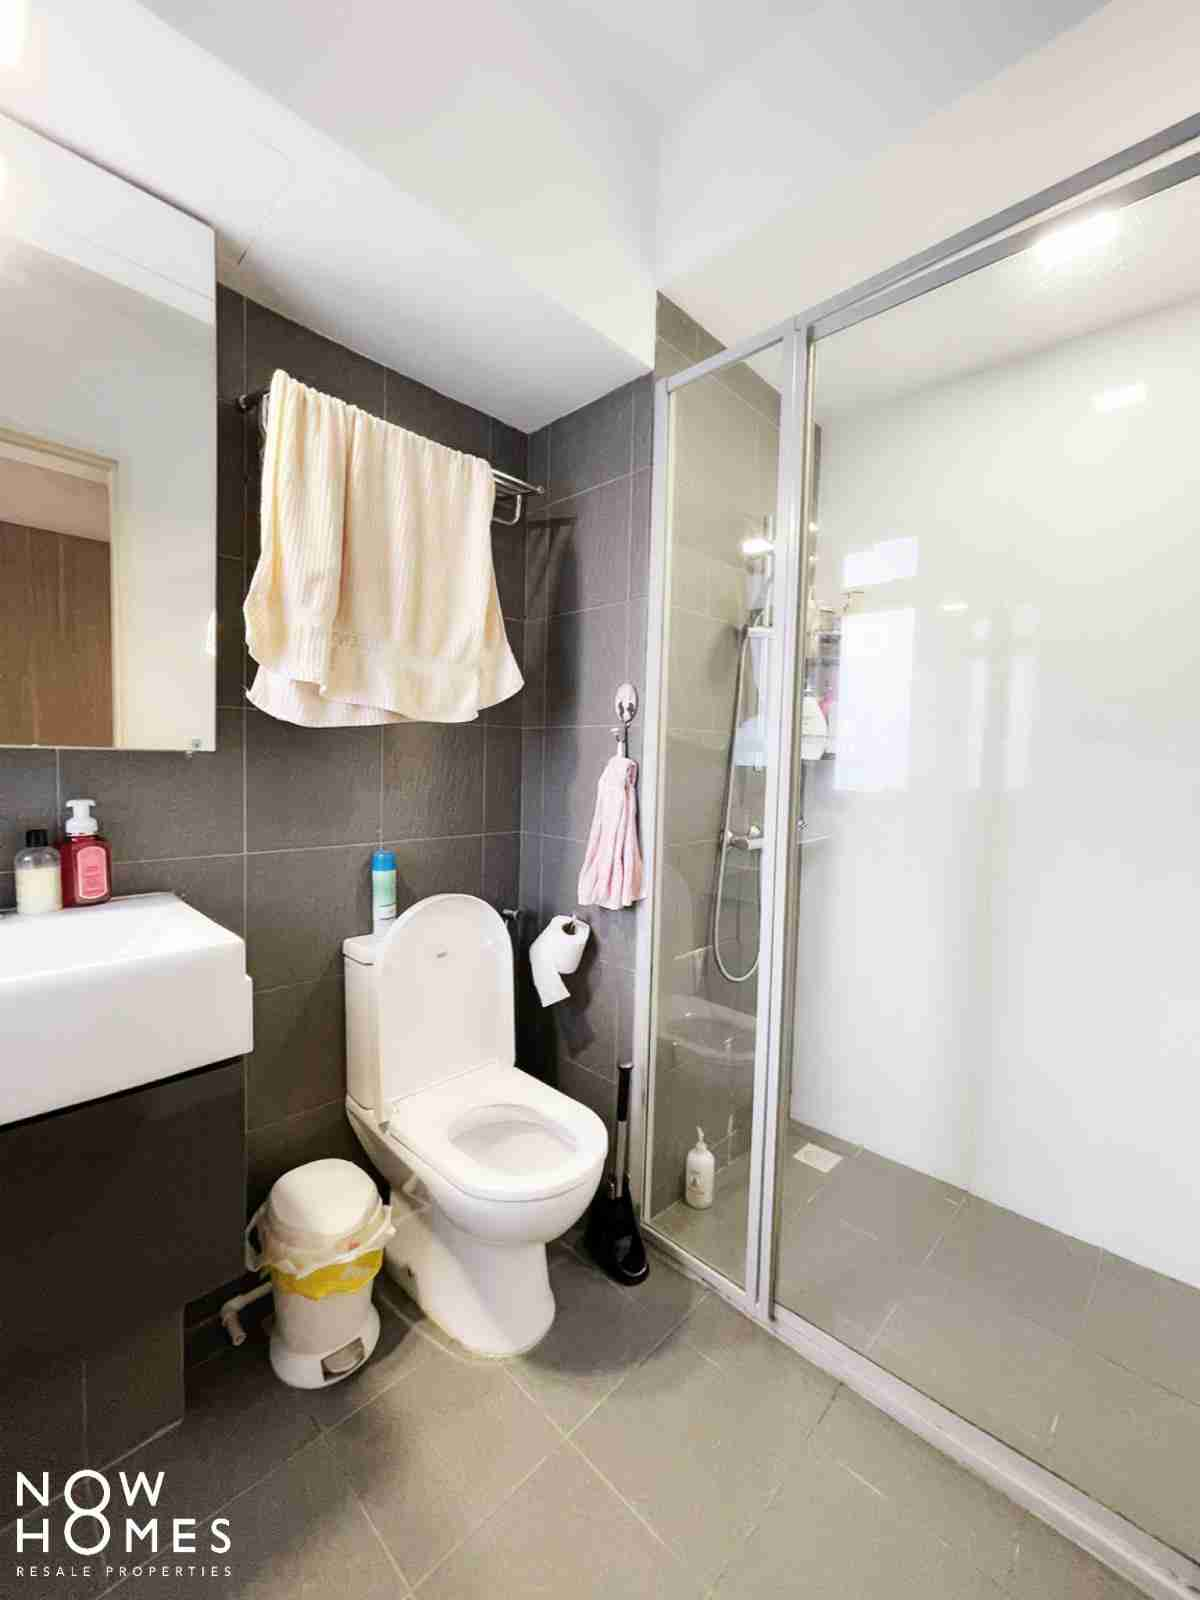 buy and sell property - 530C Pasir Ris Drive 1 - Toilet